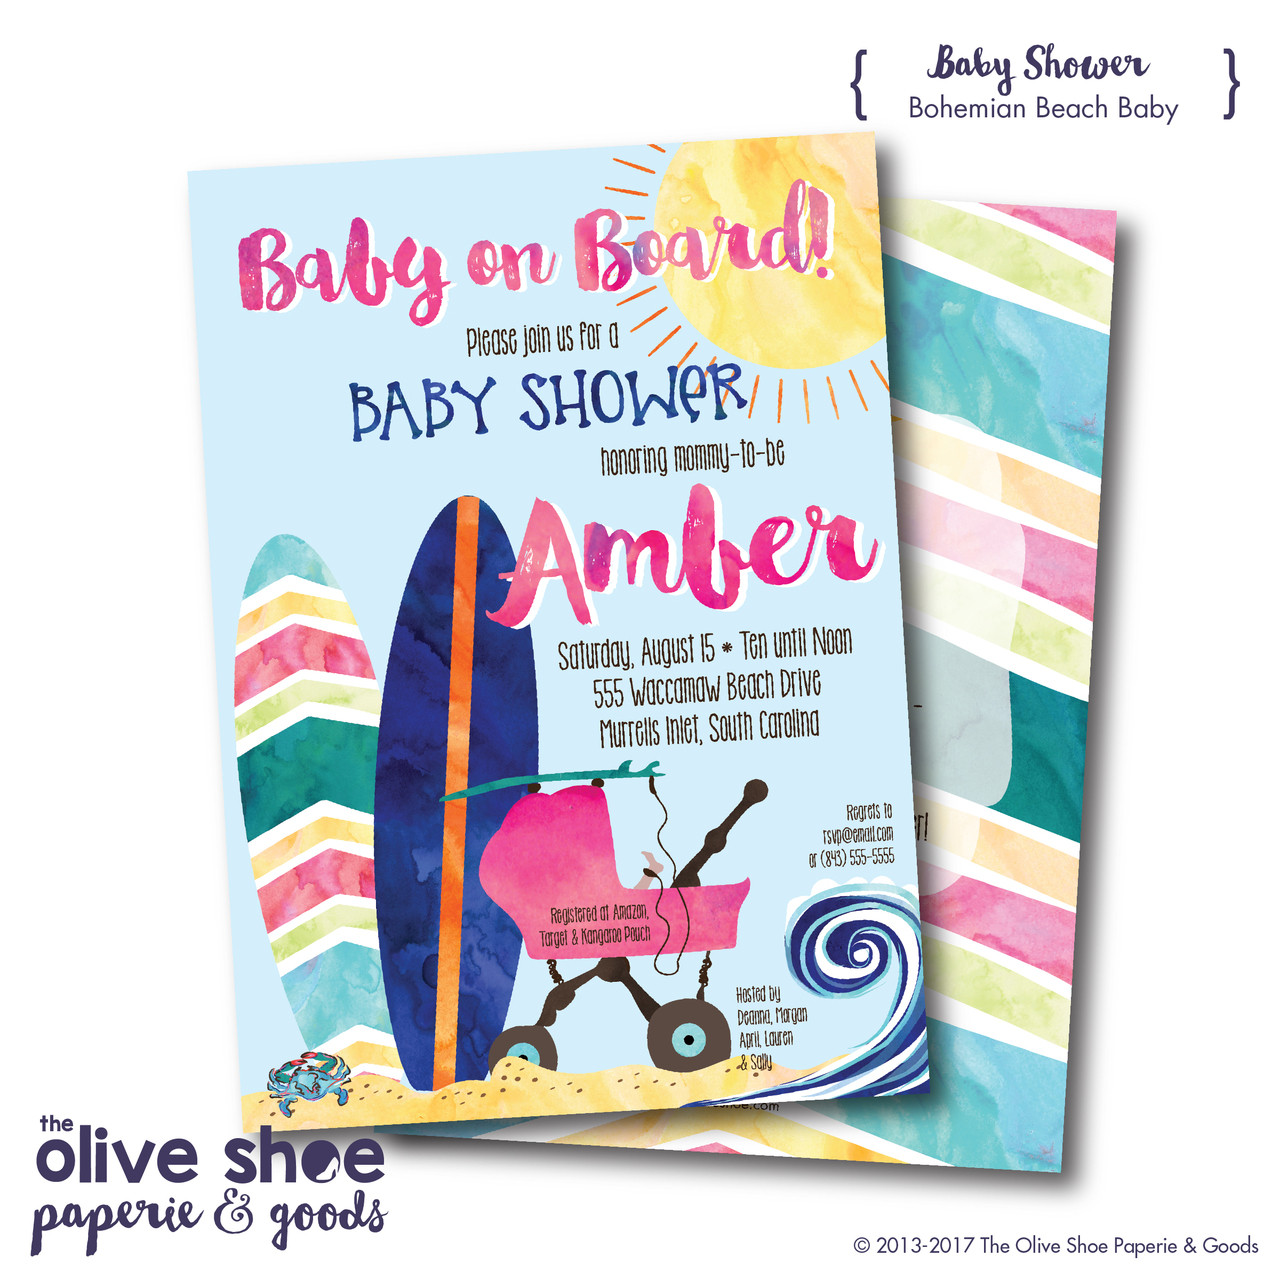 Bohemian Beach // Baby Shower Invitation - The Olive Shoe